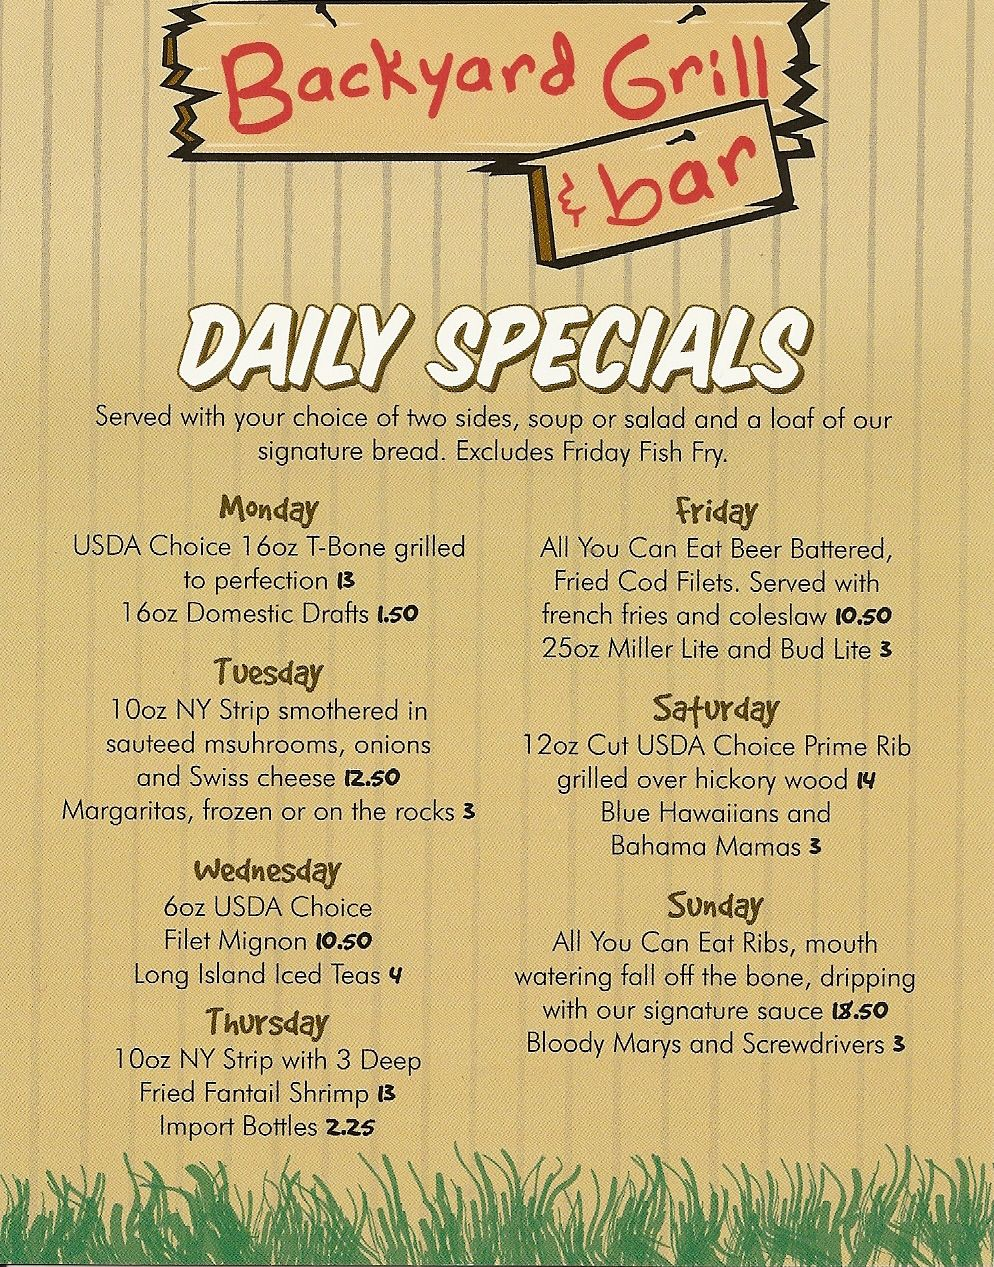 Daily Specials Menu | Backyard Grill And Bar Daily Specials Menu   Backyard  Grill And Bar Design